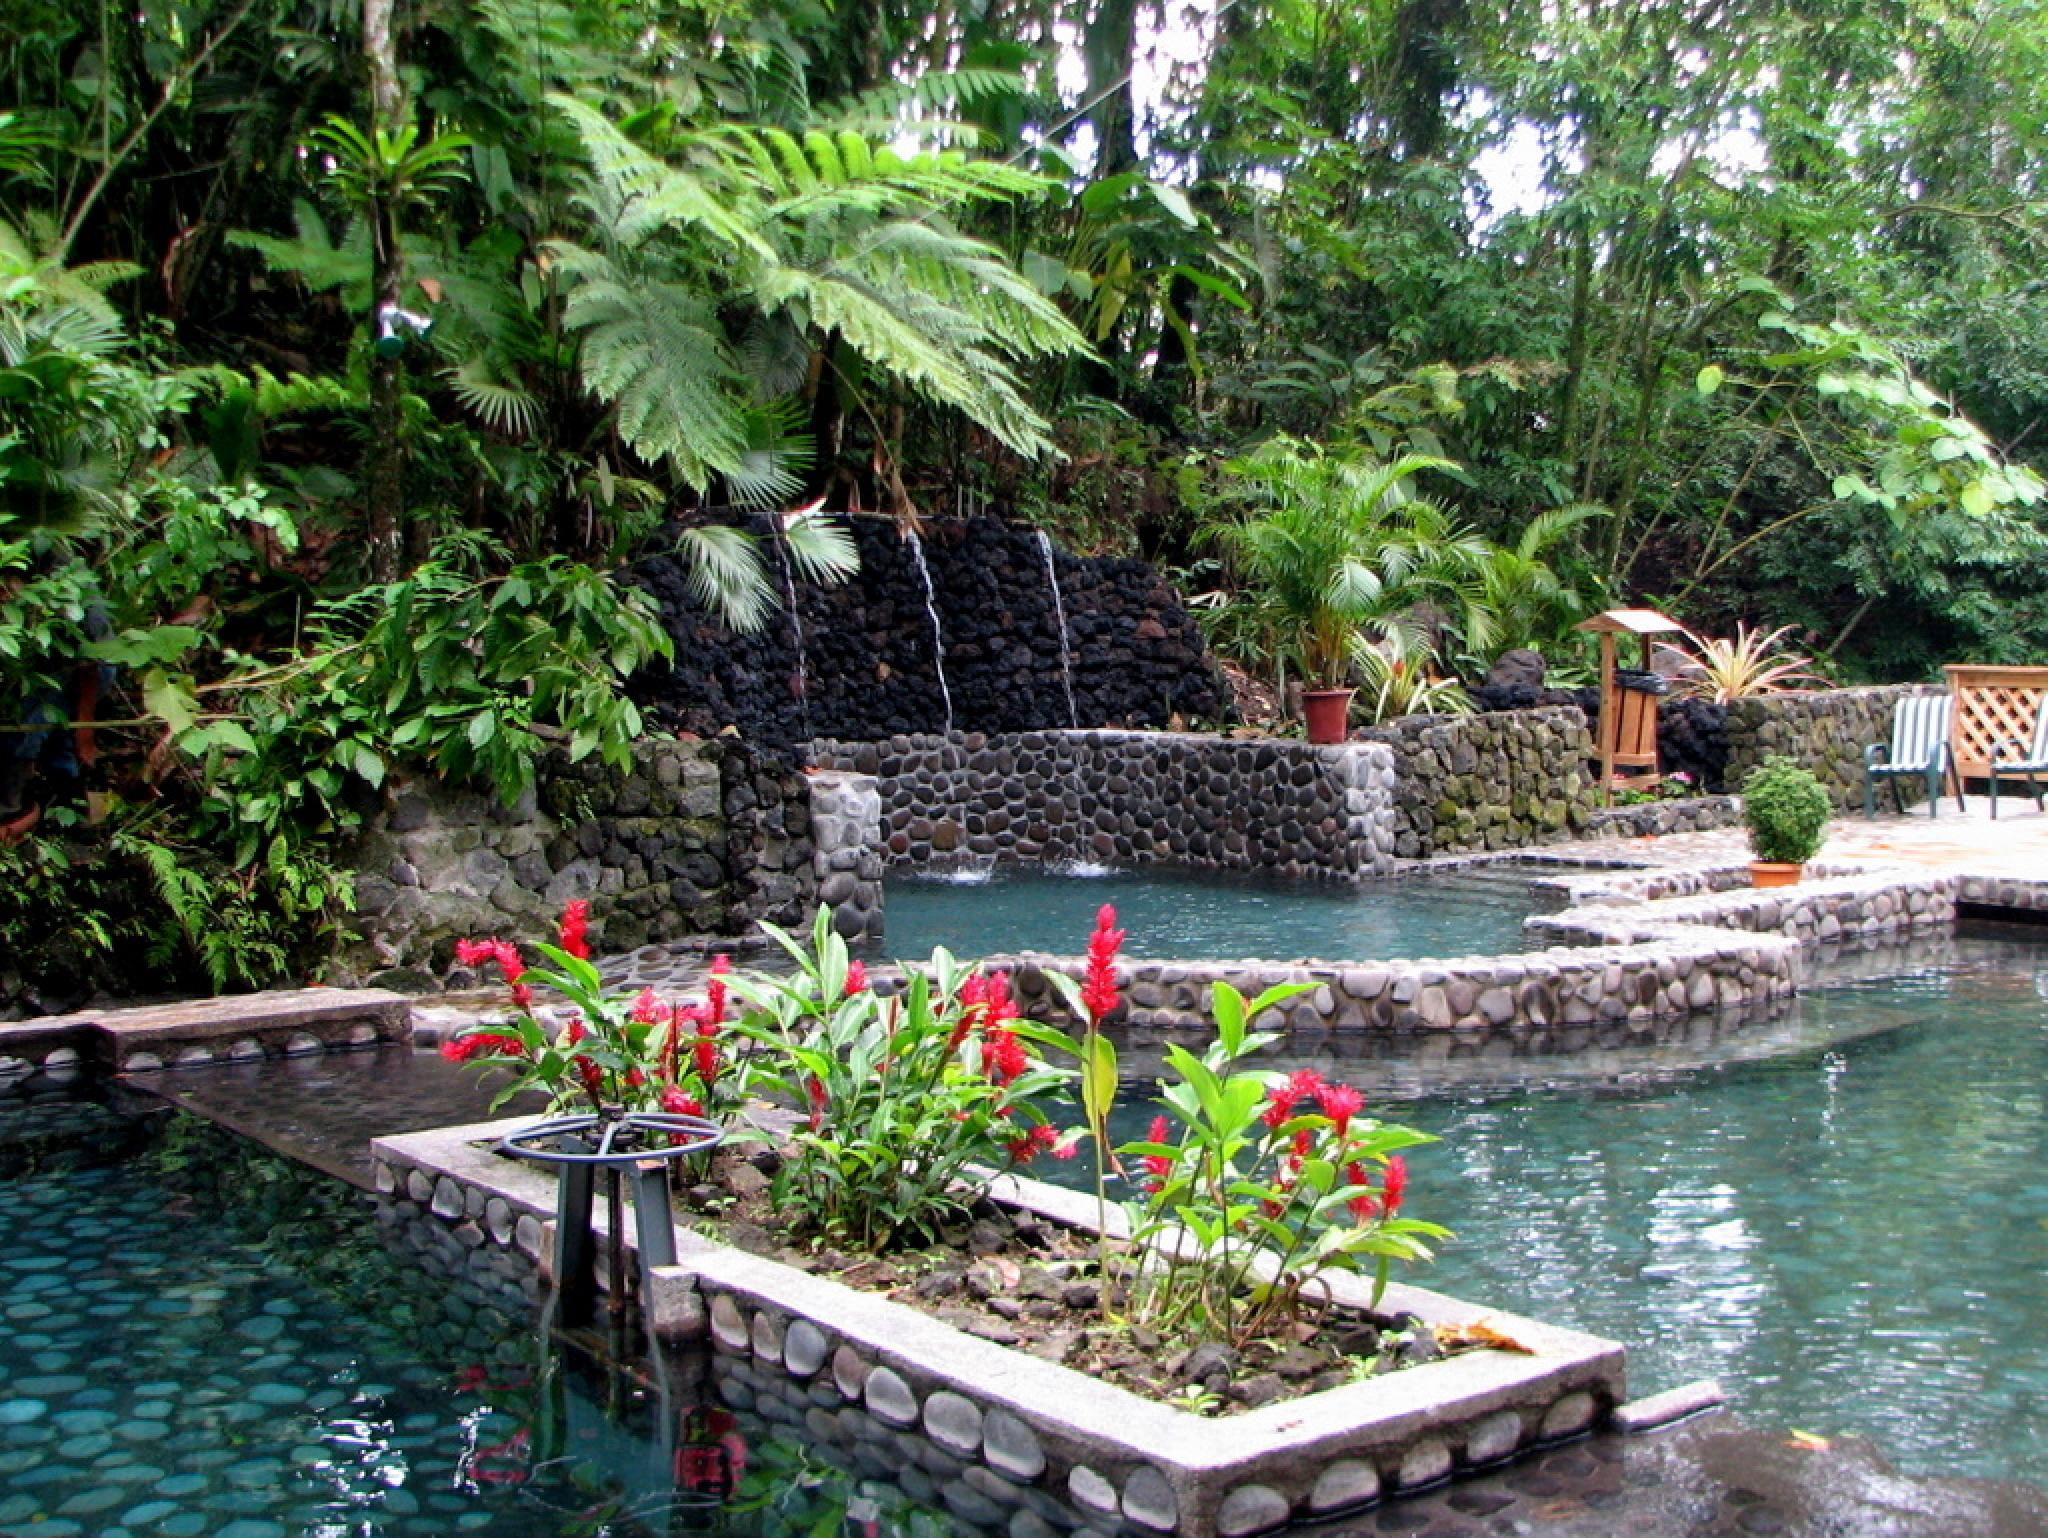 2017 costa rica destinations guide categorized by destination type